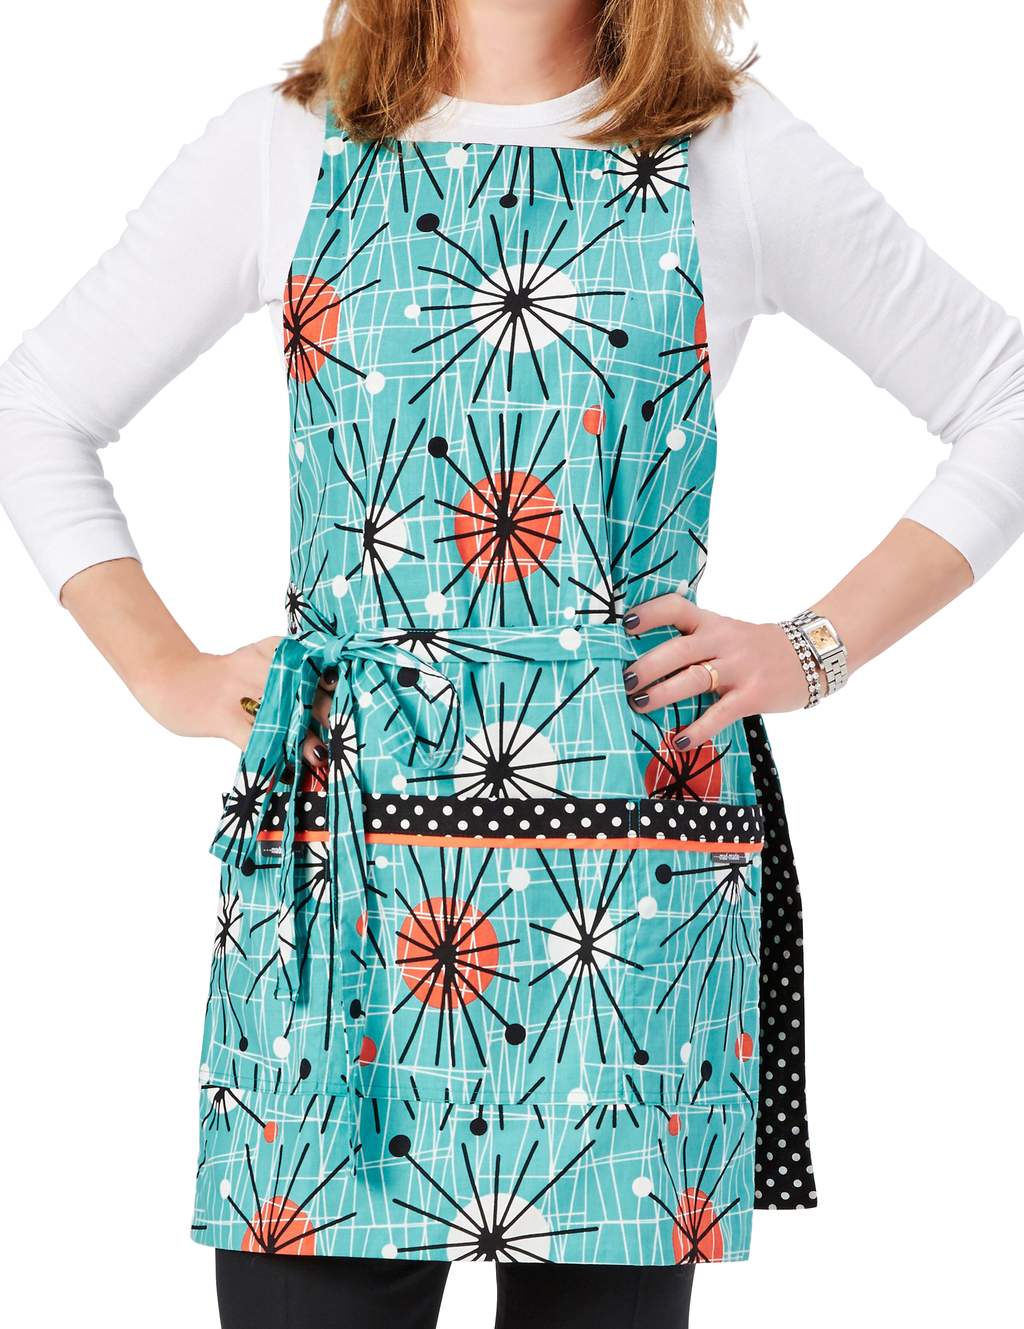 Retro apron in a Mid-century Modern abstract print in orange, black and white on a turquoise background on one side reverses to a classic black and white polka dot print on the other, turquoise abstract print side, front view.